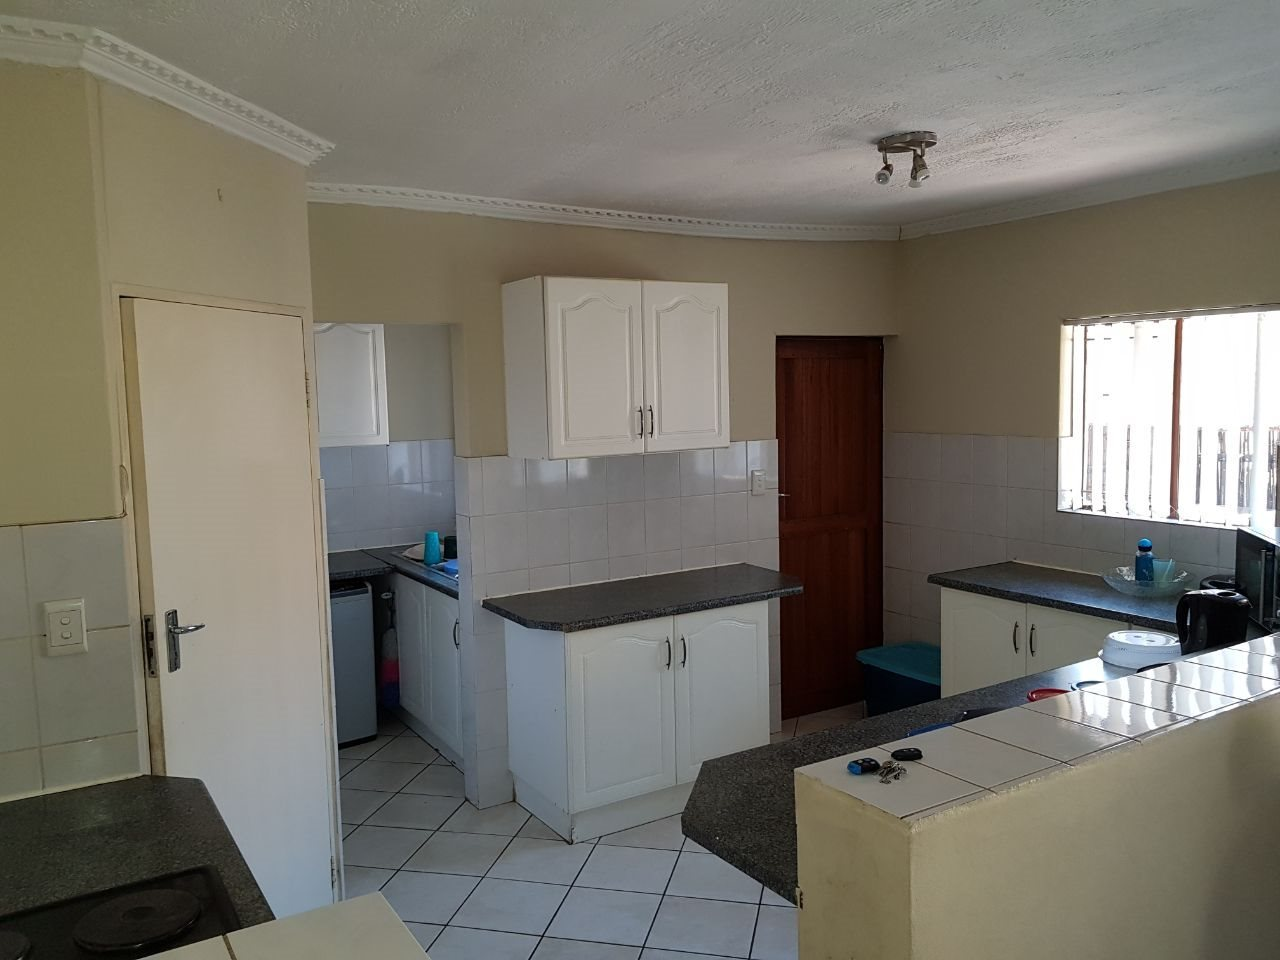 3 Bedroom House for sale in Montana Park ENT0067080 : photo#3